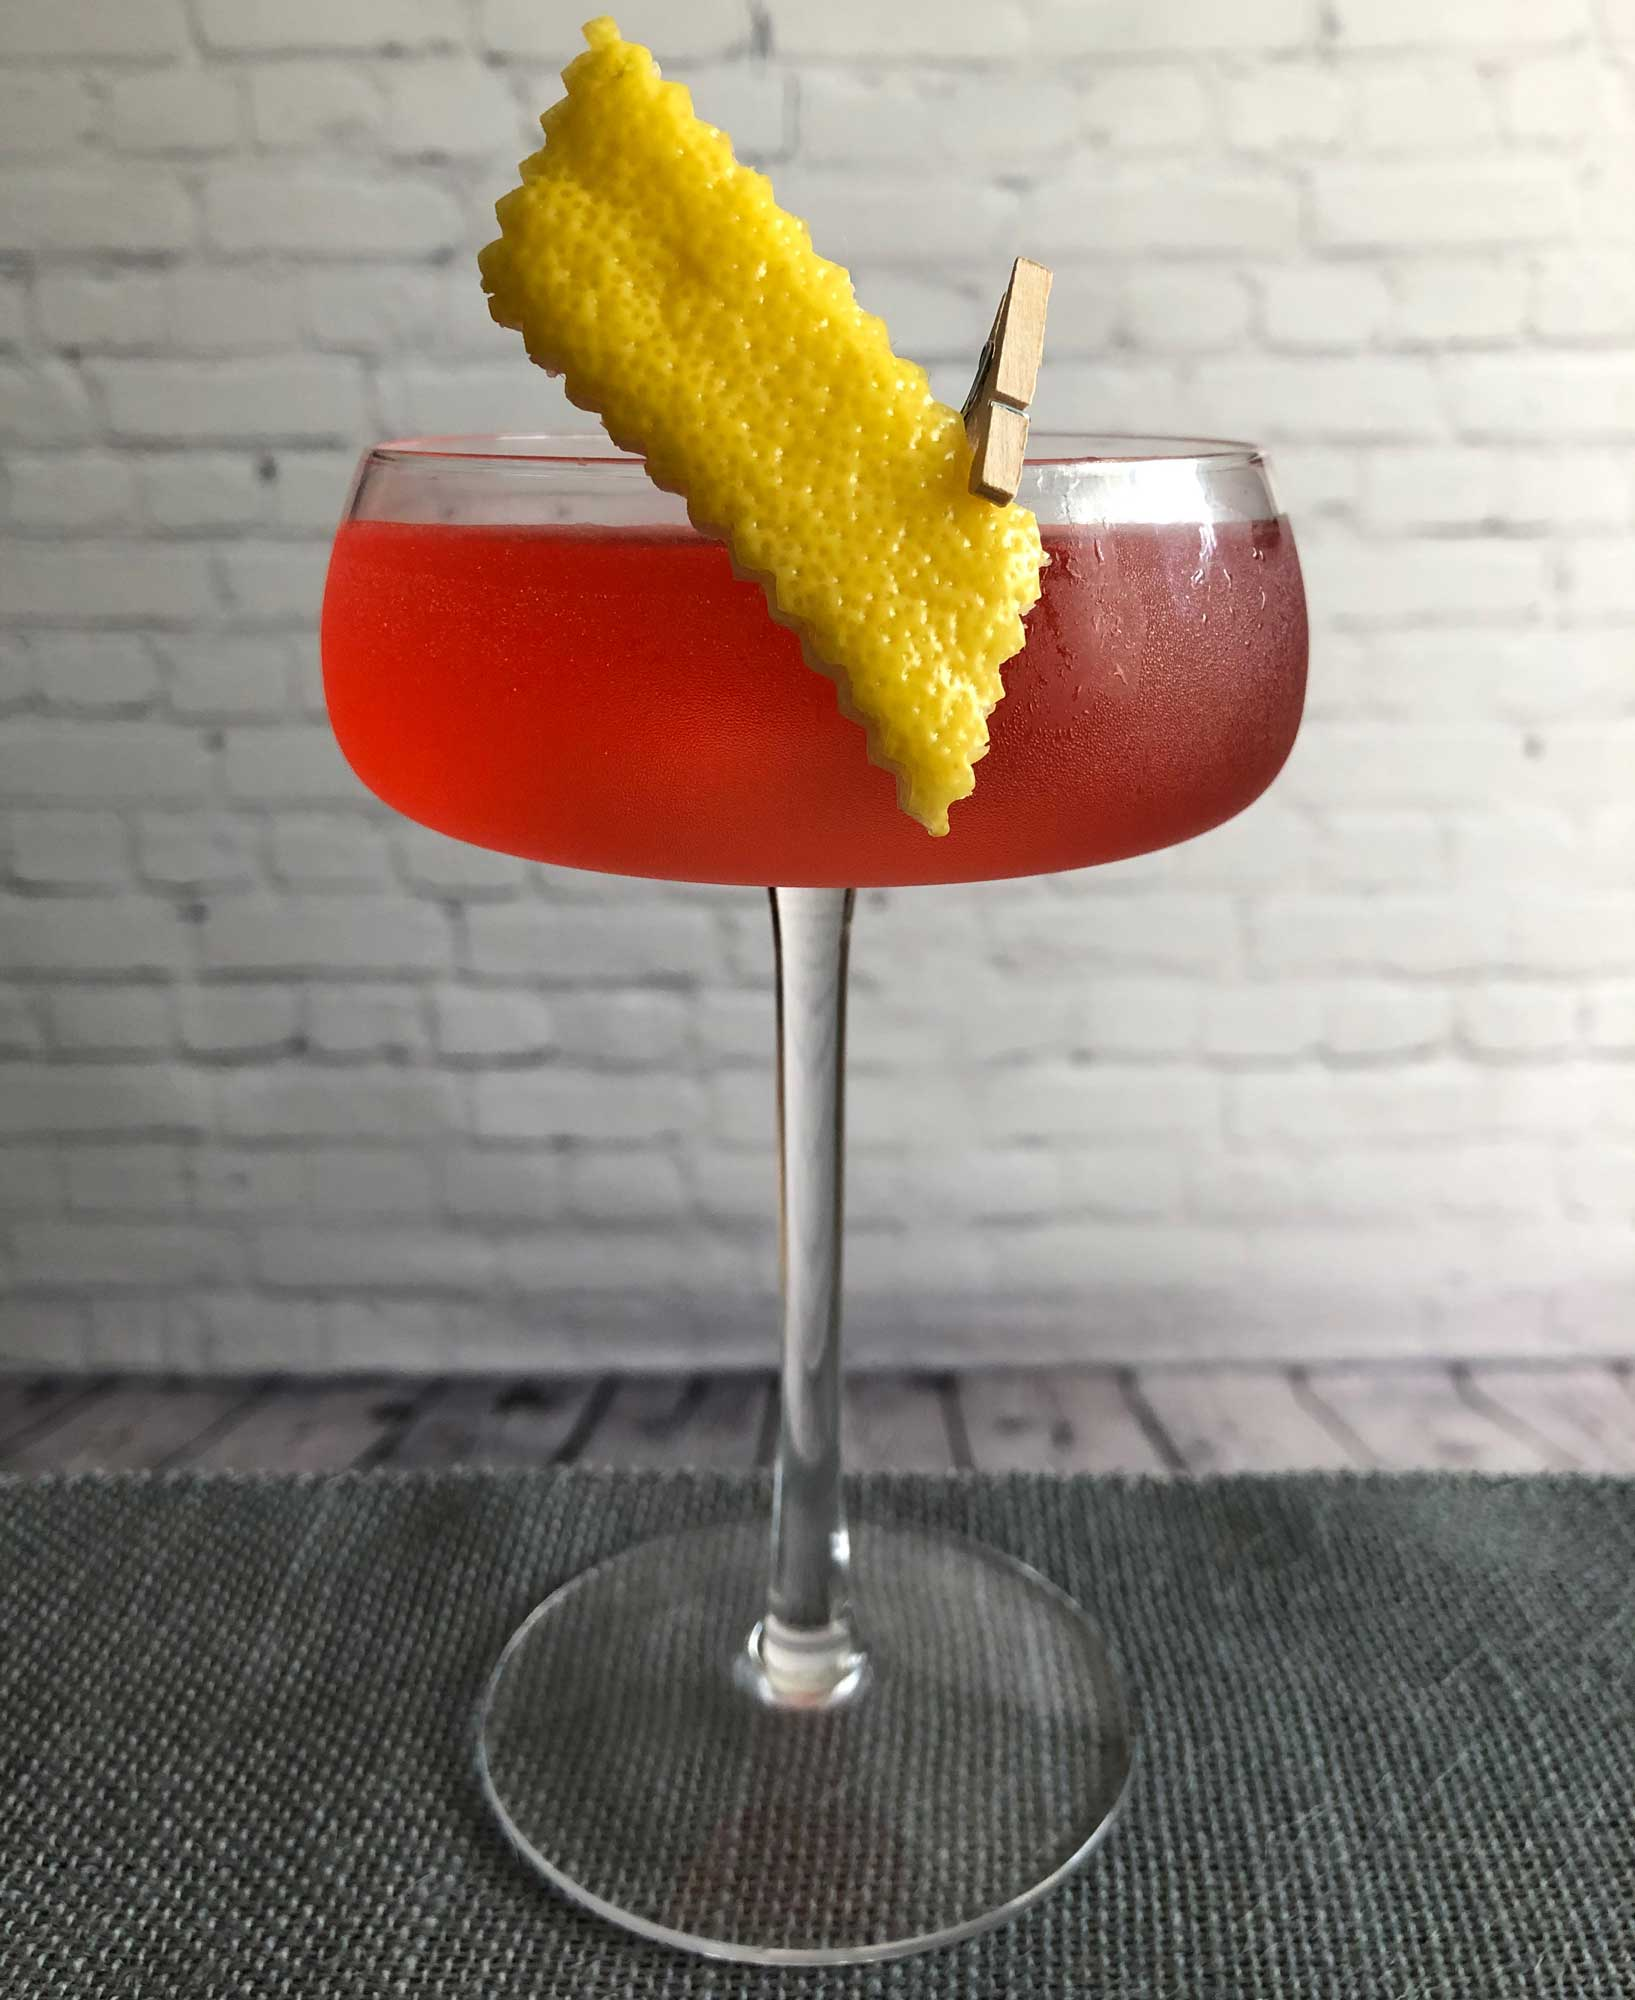 An example of the Haus Cosmopolitan, the mixed drink (cocktail), by Lee Edwards, featuring Dolin Dry Vermouth de Chambéry, Blume Marillen Apricot Eau-de-Vie, vodka, lemon juice, Cocchi Americano Rosa, simple syrup, and Peychaud's Aromatic Cocktail Bitters; photo by Lee Edwards